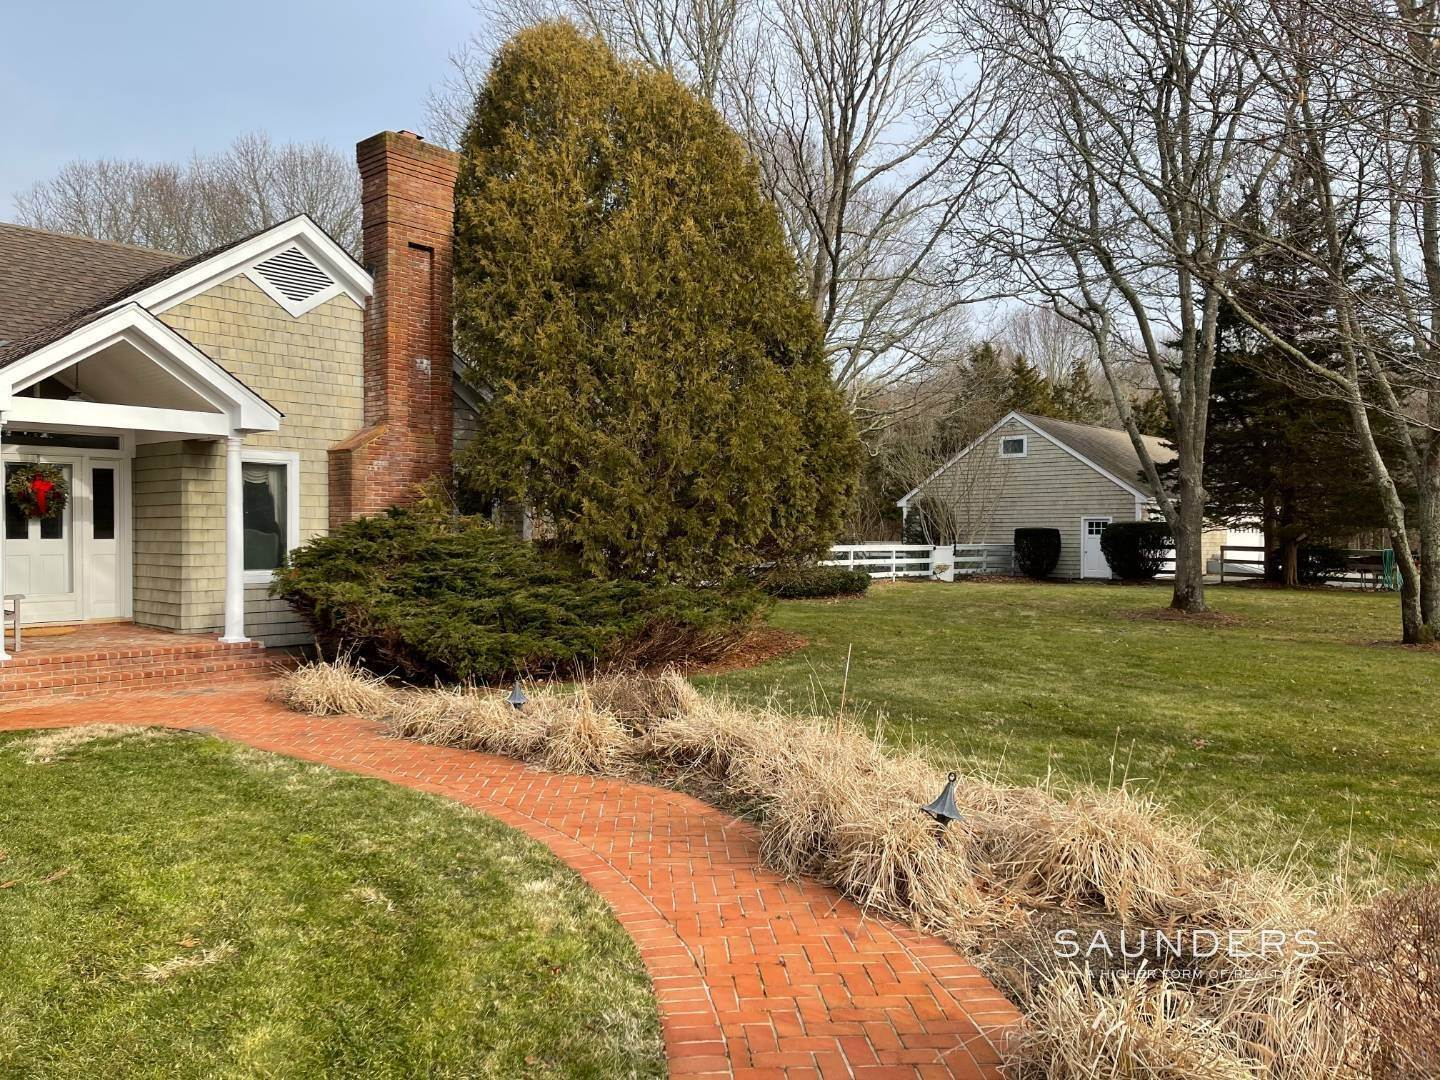 33. Single Family Homes for Sale at Prime 2.8 Acres In Sagaponack Village W/ Barn & Room For Tennis 44 Greenleaf Lane, Sagaponack Village, Southampton Town, NY 11962